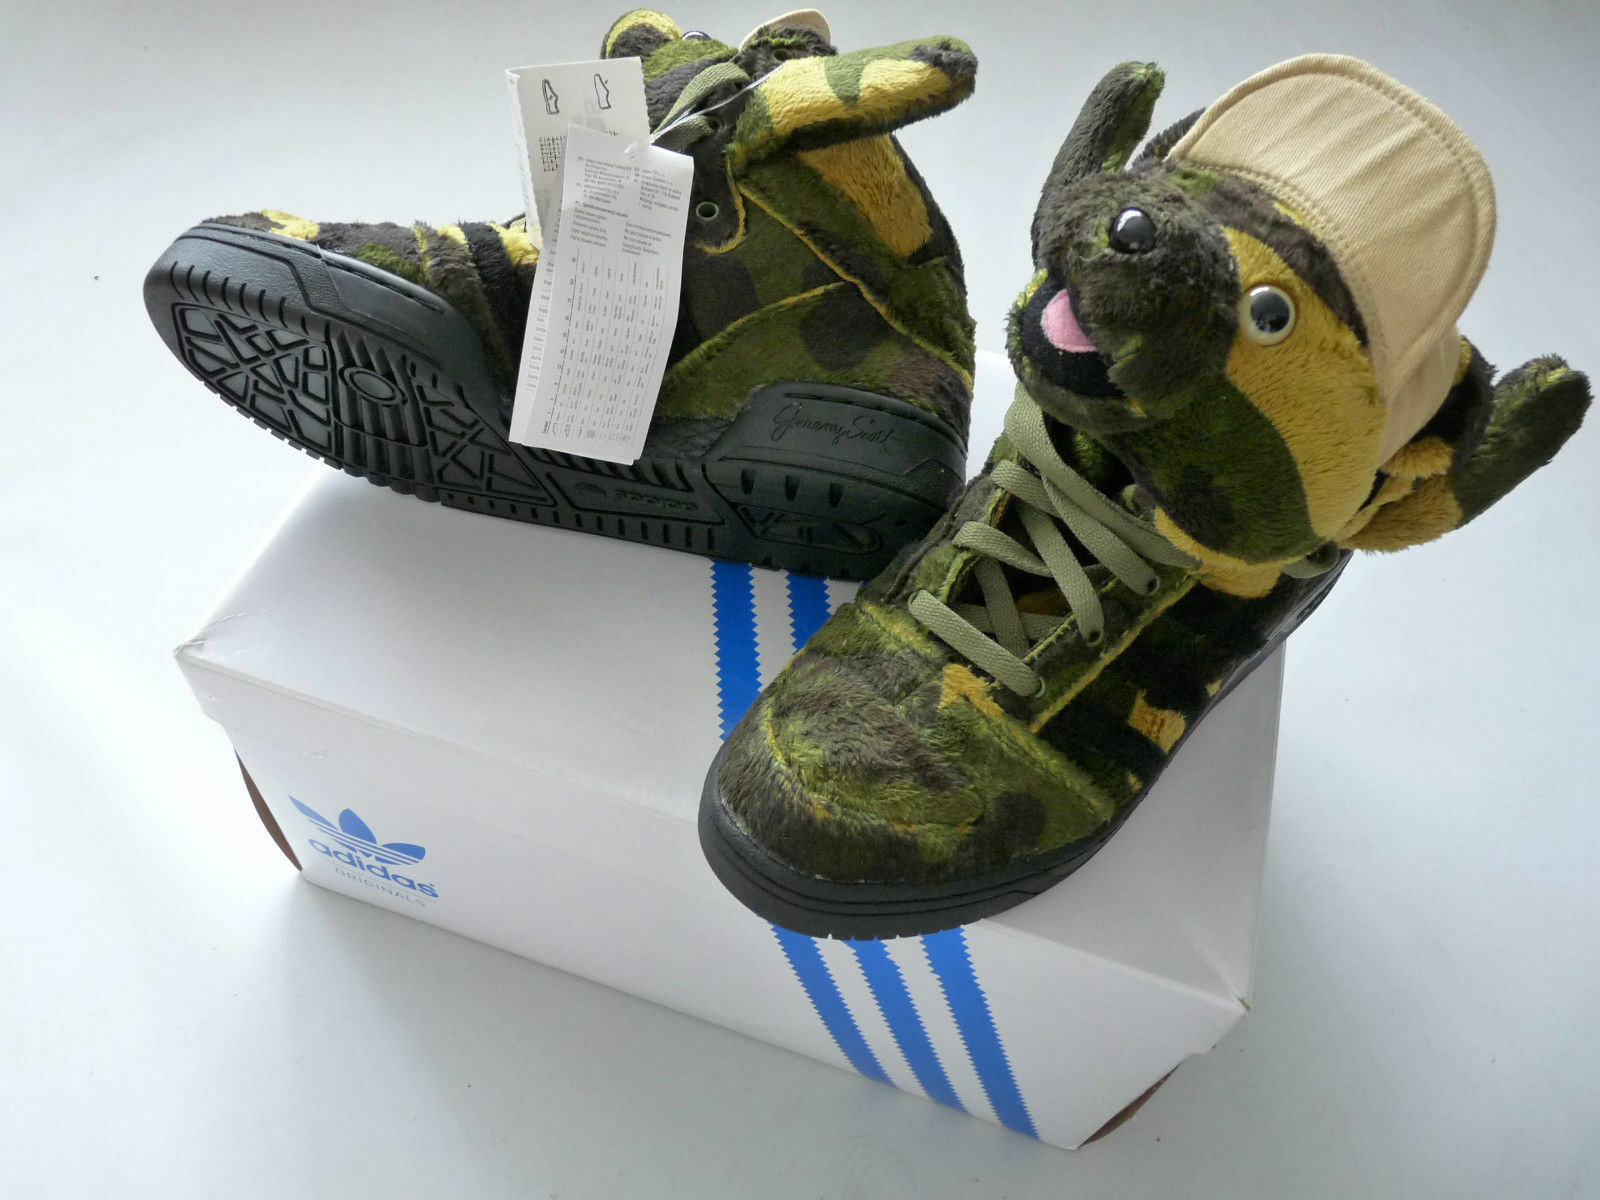 Hommes Camo ADIDAS 2018 OBYO JS Jeremy Scott Camo Hommes Bear Trainers Army Color 4dbede